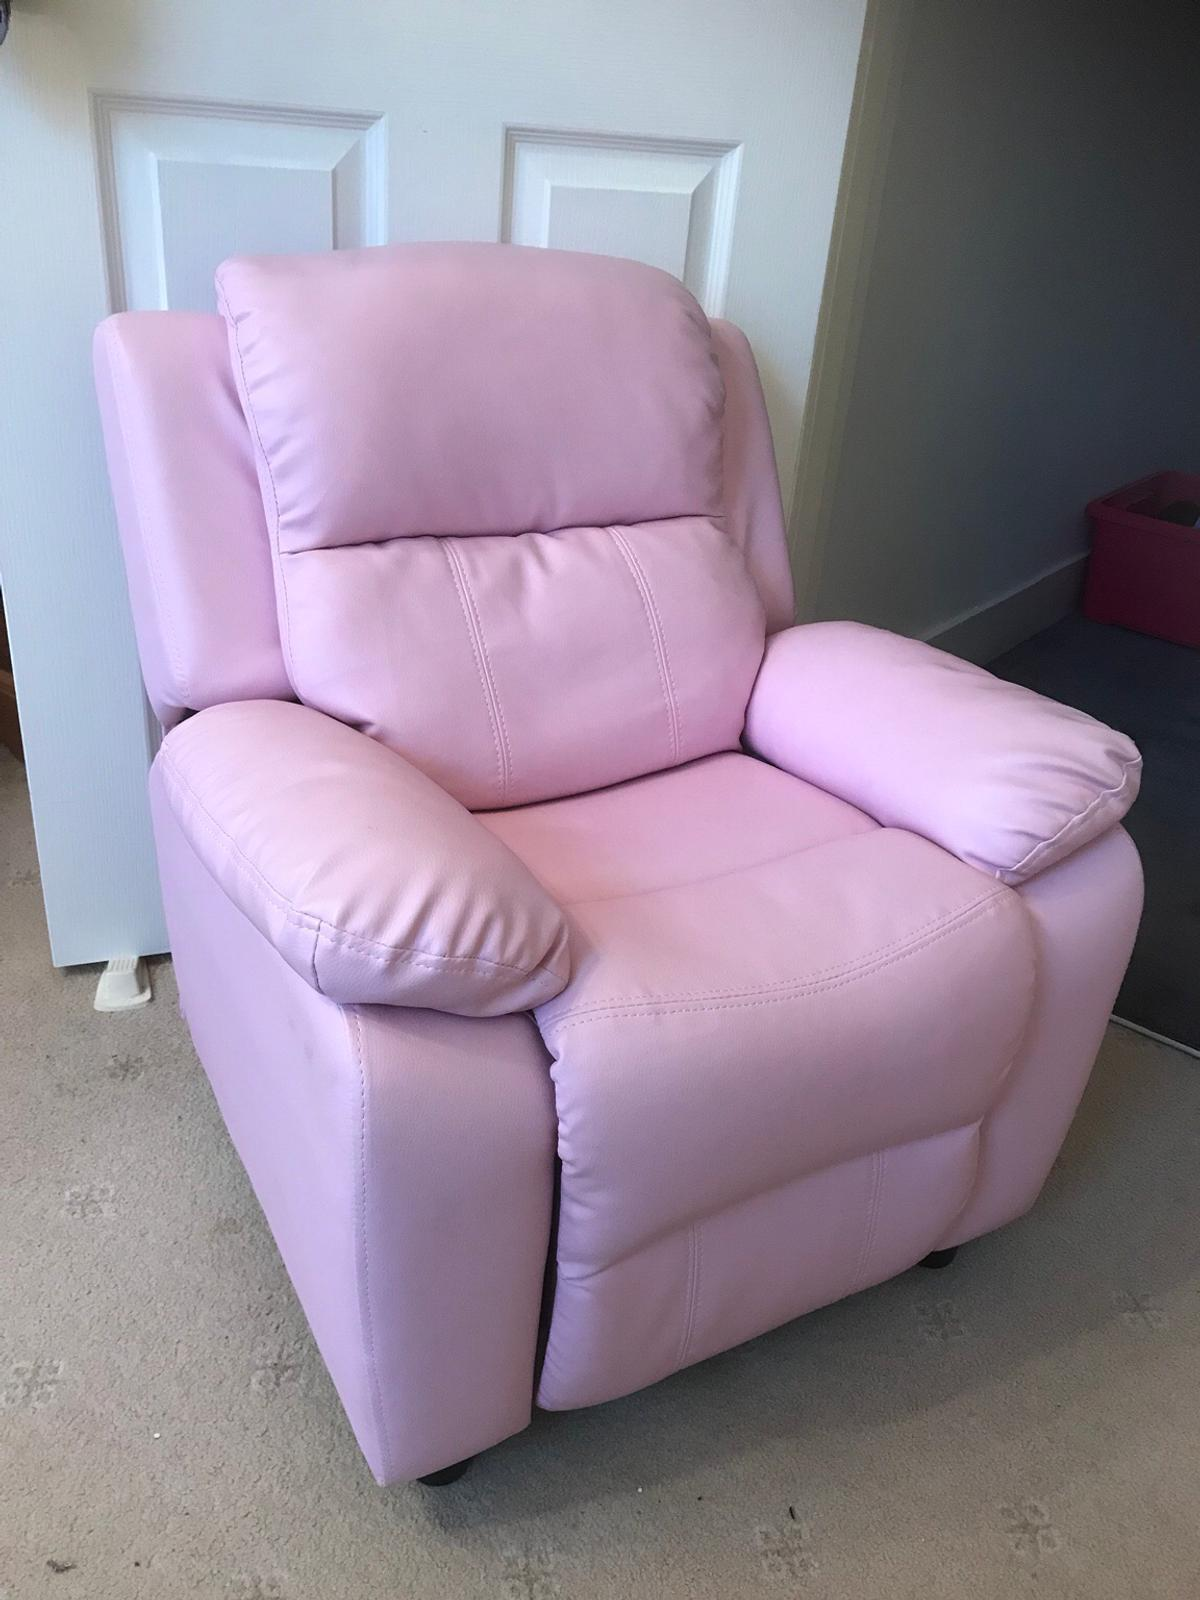 Remarkable Kids Pink Recliner Chair With Arm Pockets In N21 London Andrewgaddart Wooden Chair Designs For Living Room Andrewgaddartcom